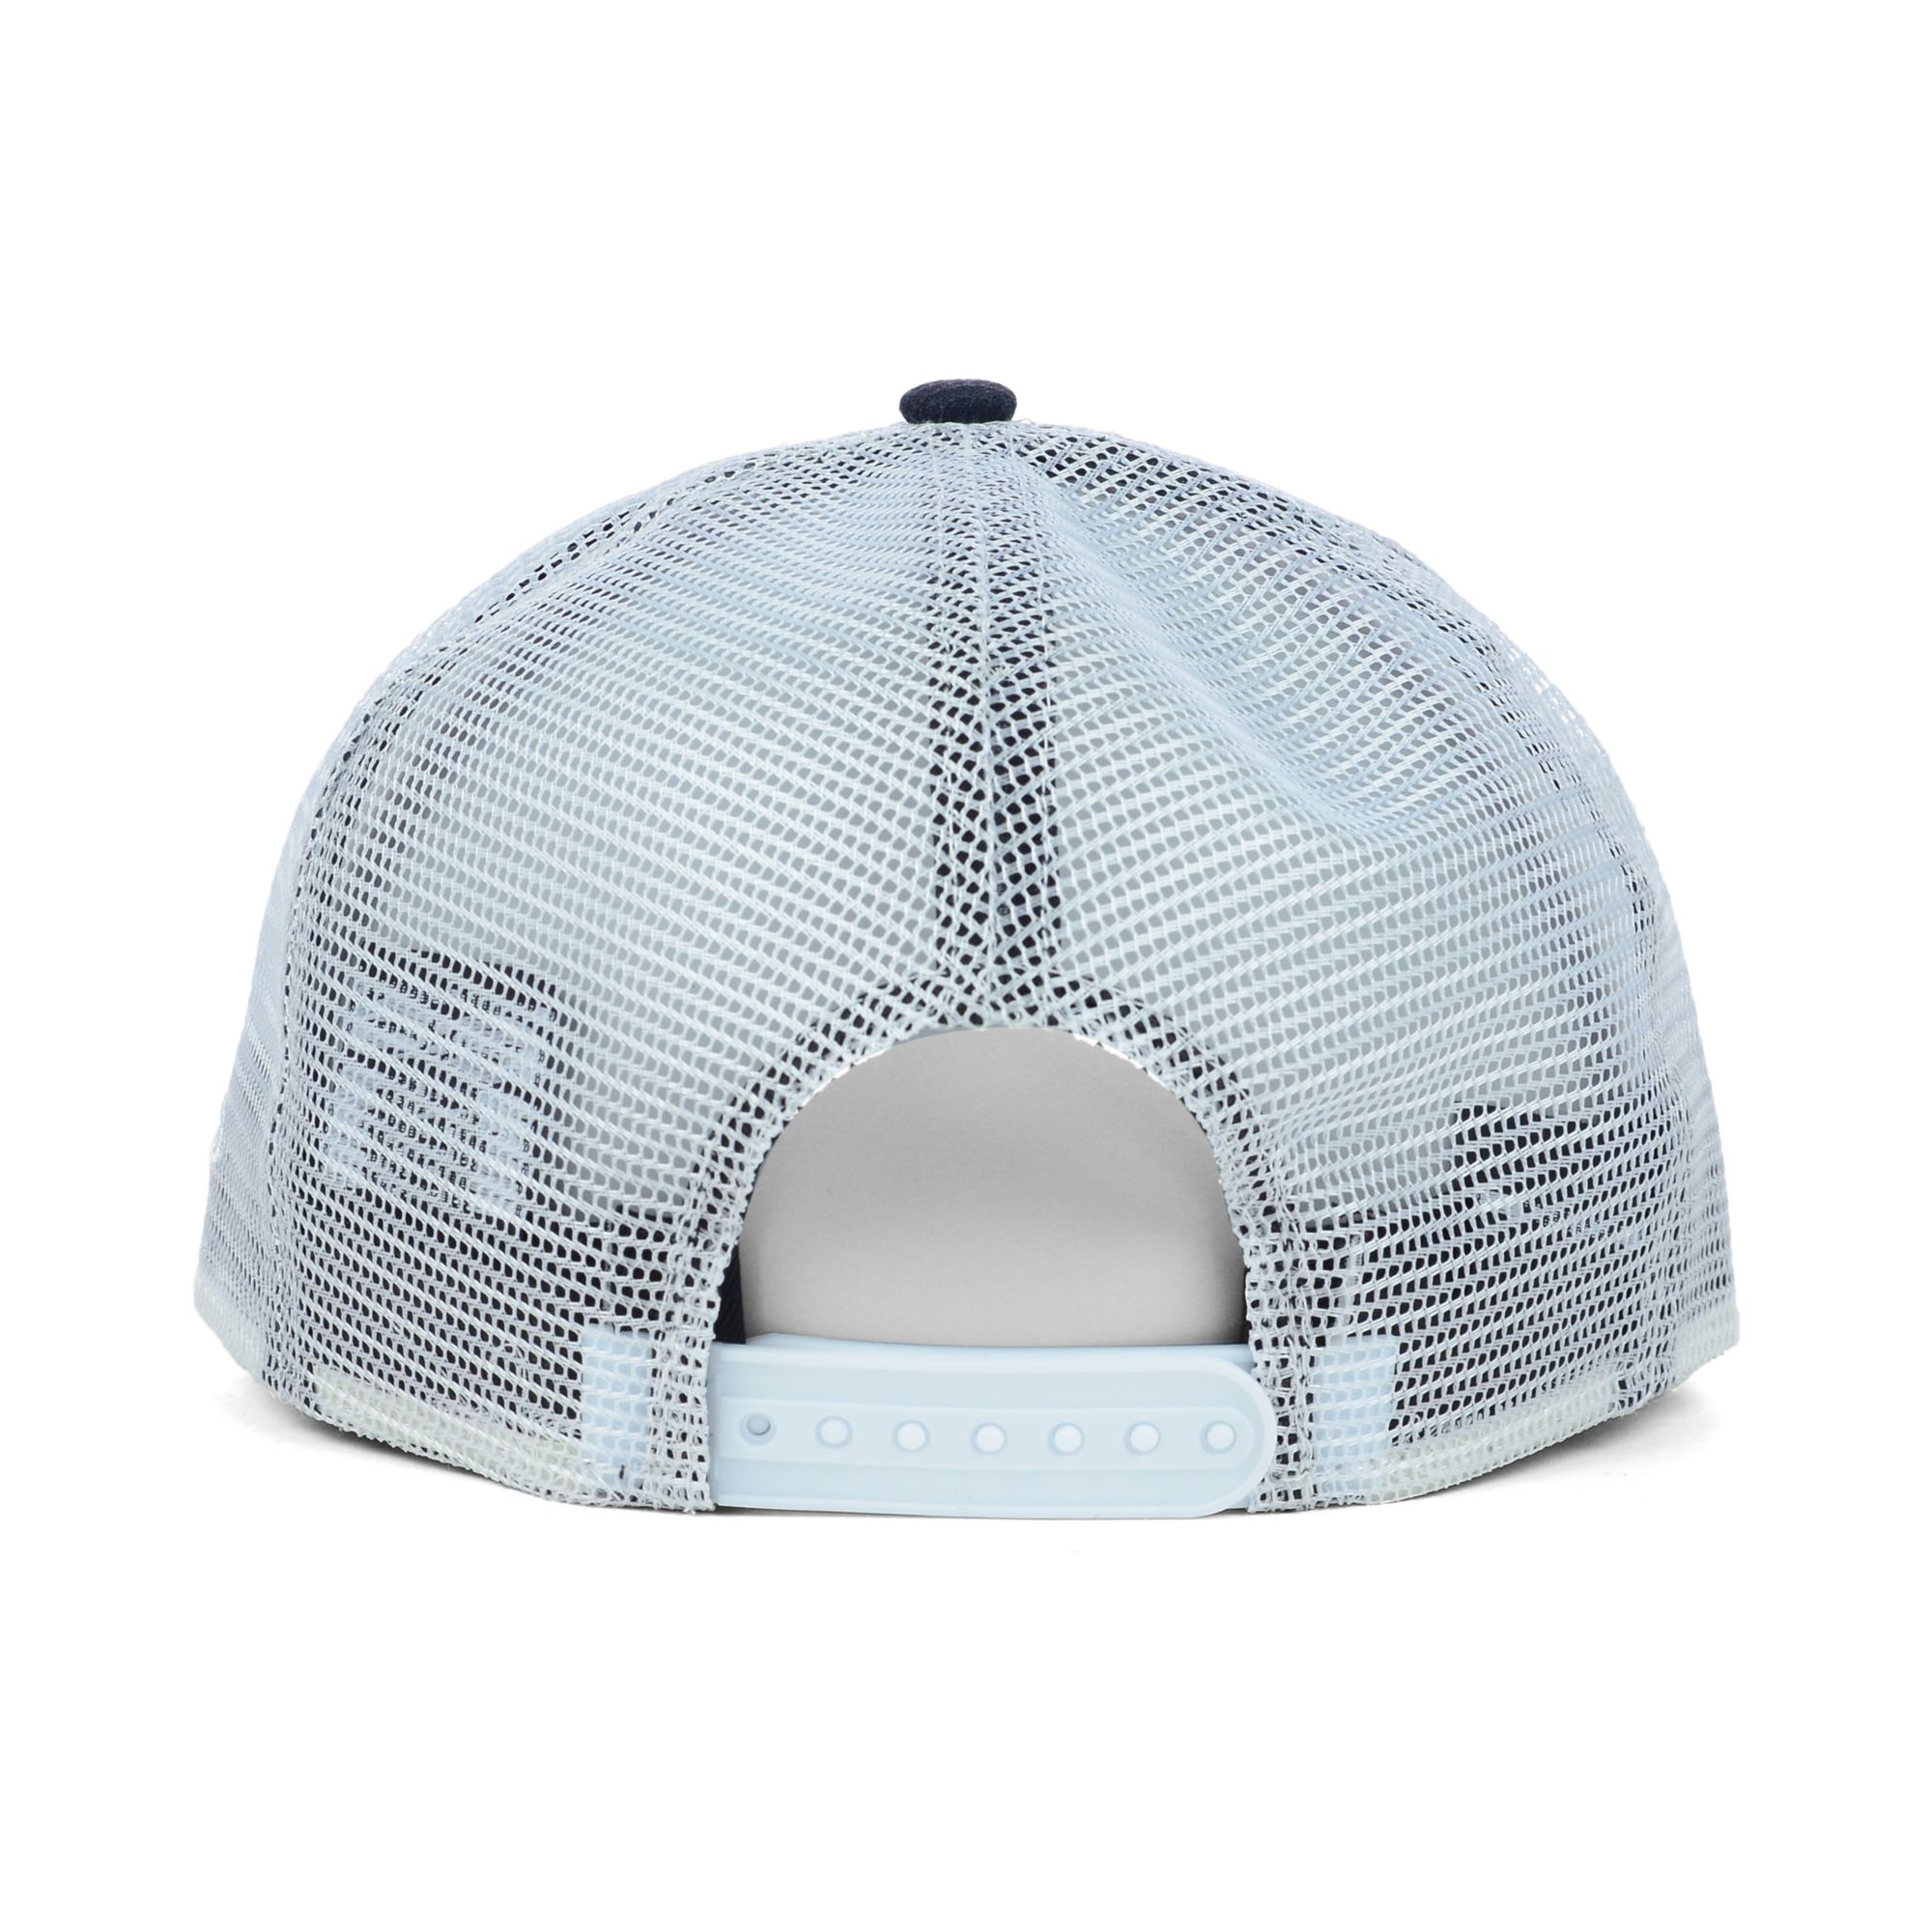 wholesale dealer f9637 cb842 australia lyst ktz san diego padres mlb diamond mesh 9fifty snapback cap in  e24d7 b12f3